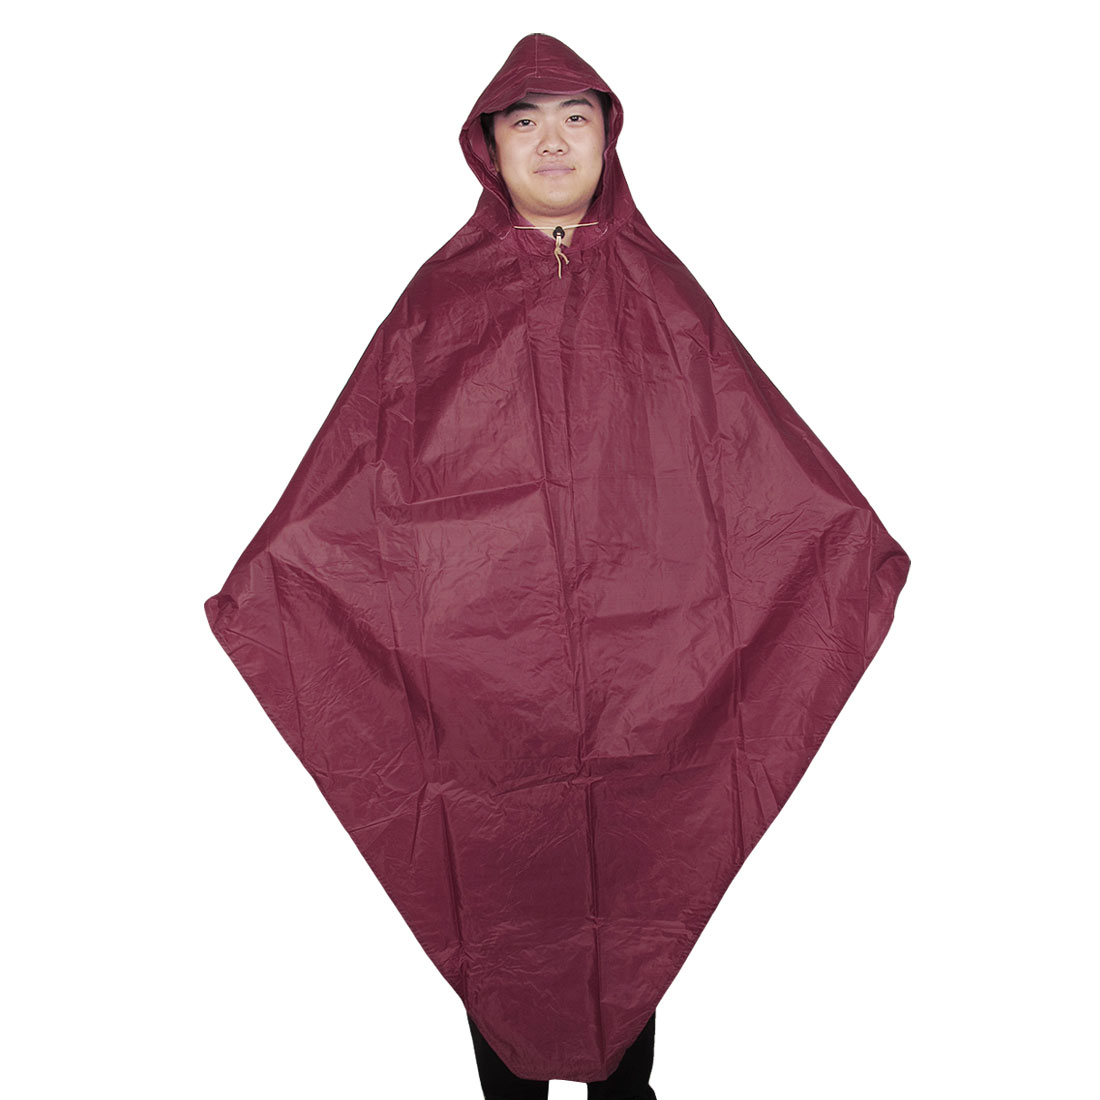 Dark Red Drawstring Closure Hooded Water Resistant Raincoat for Adult